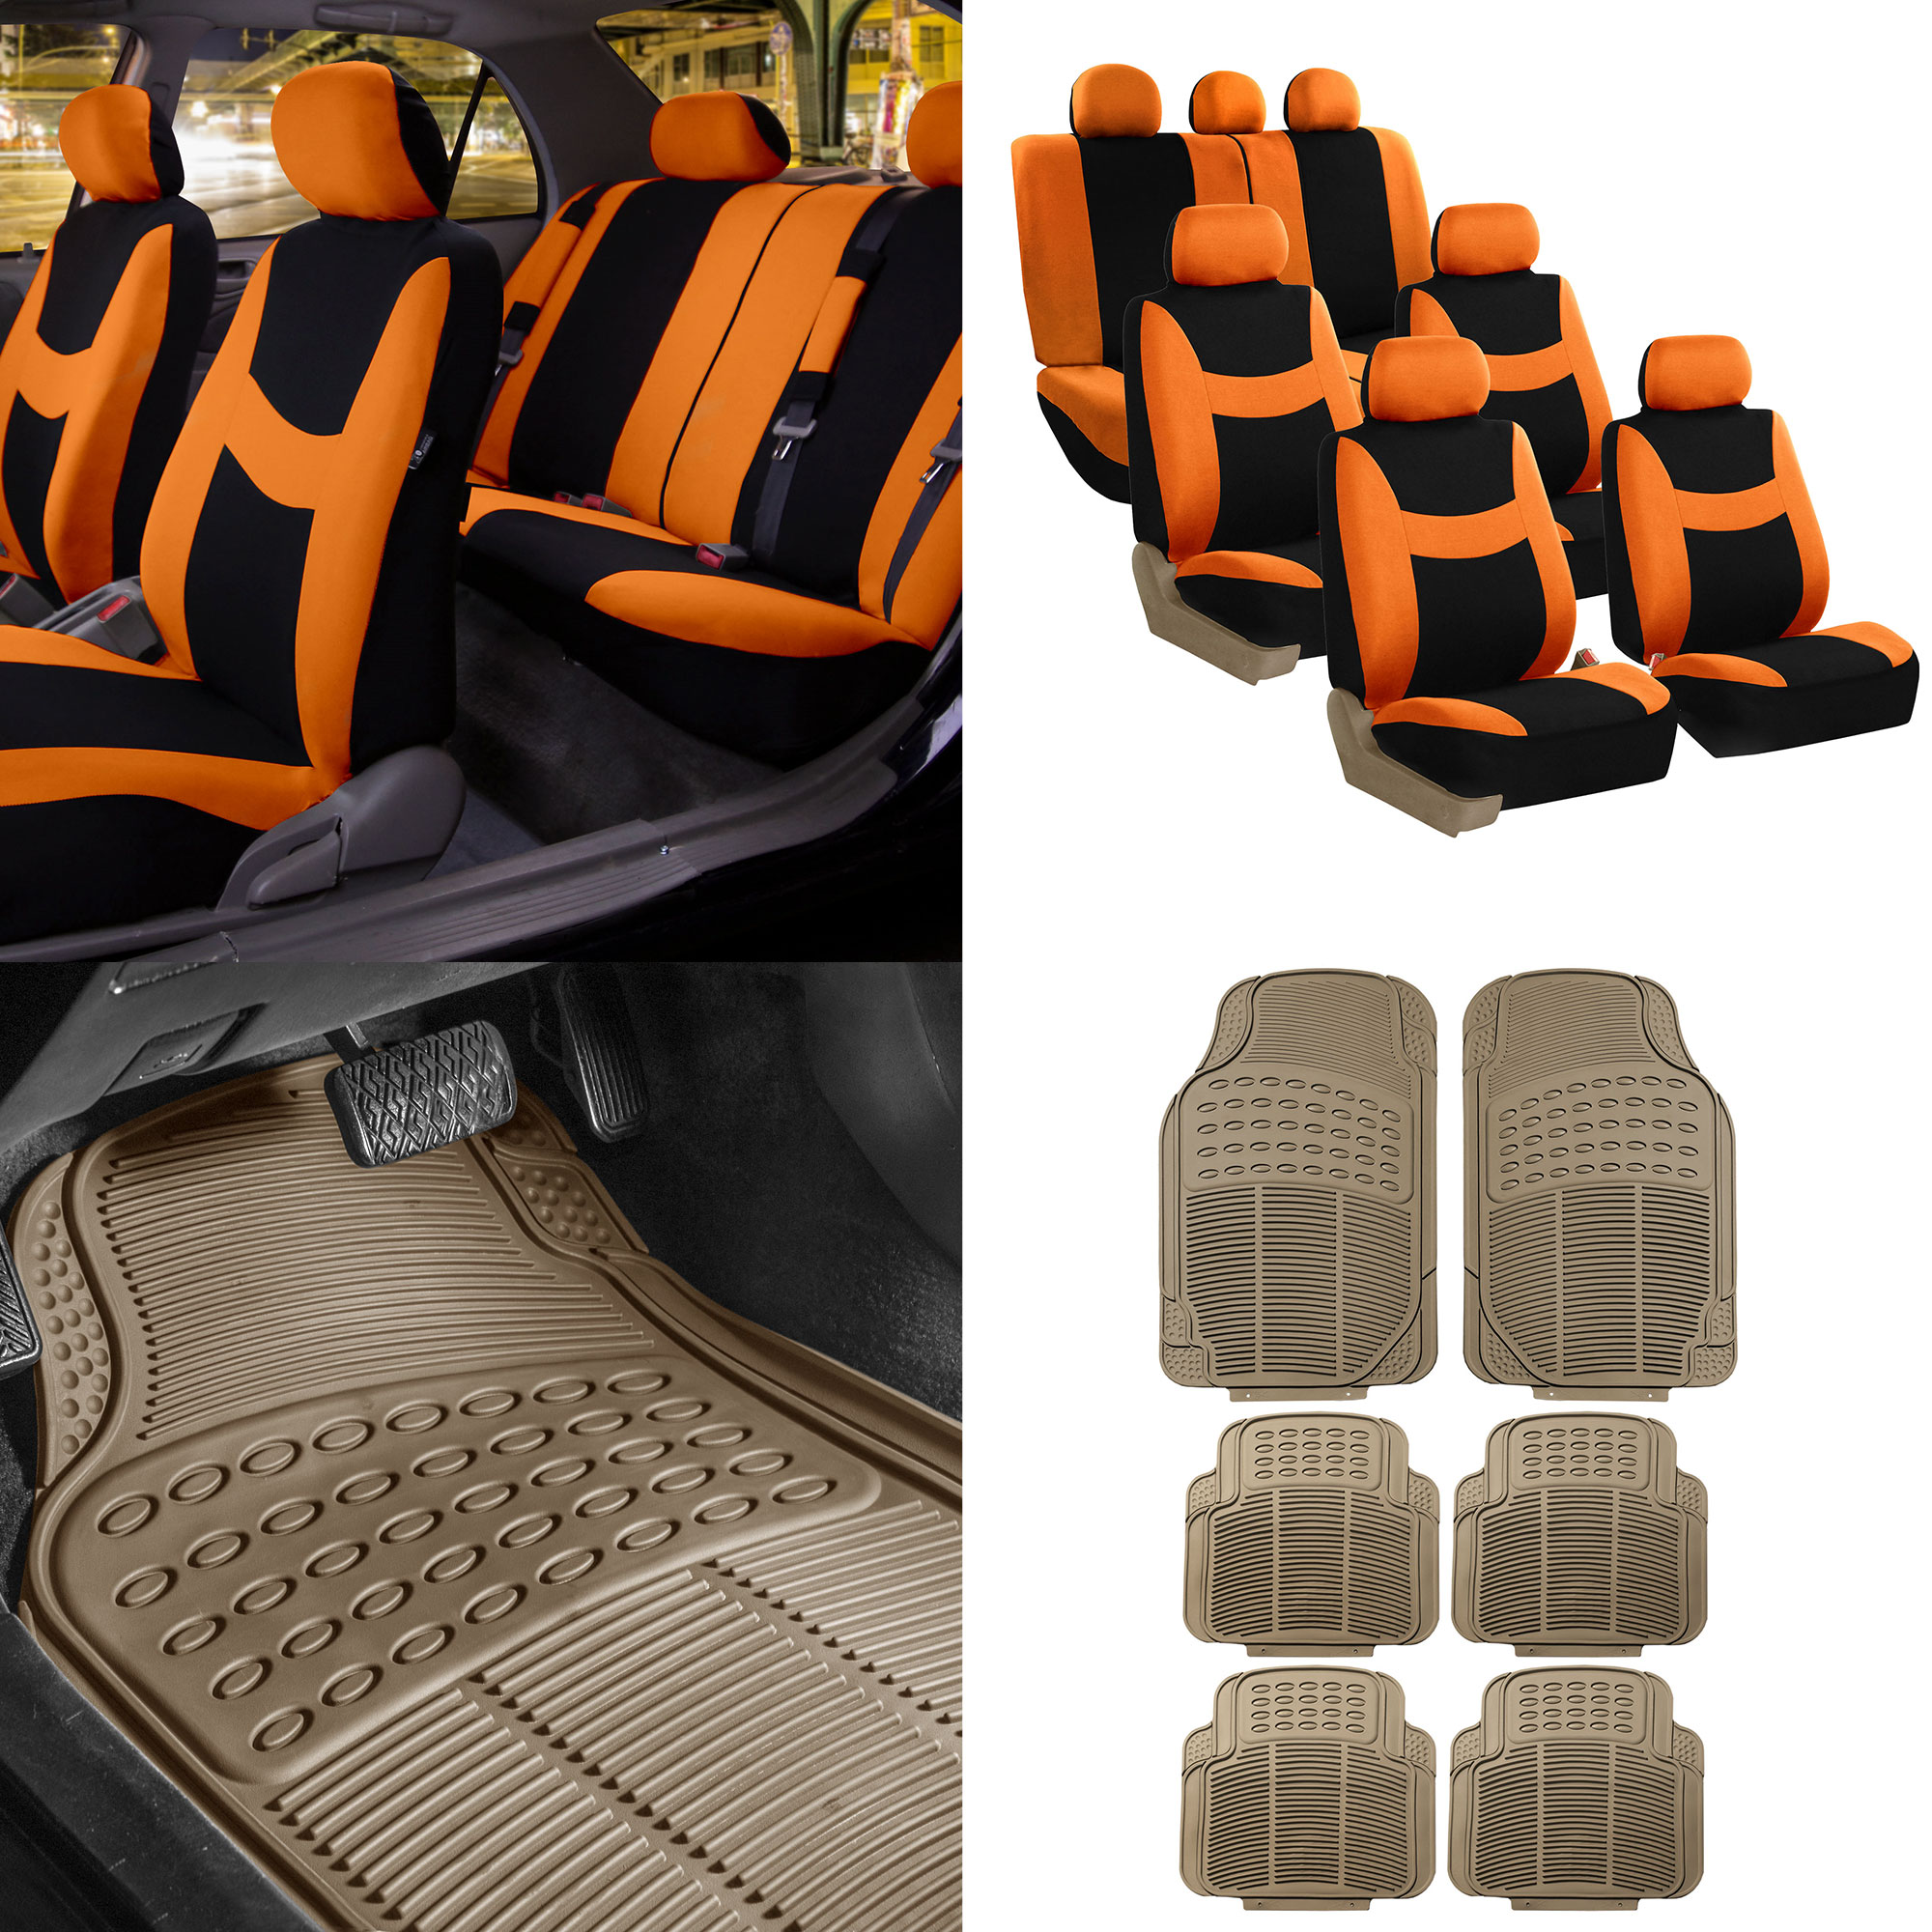 FH Group, 7 Seaters 3 Row Orange Seat Covers for SUV Van Combo with Beige Floor Mats